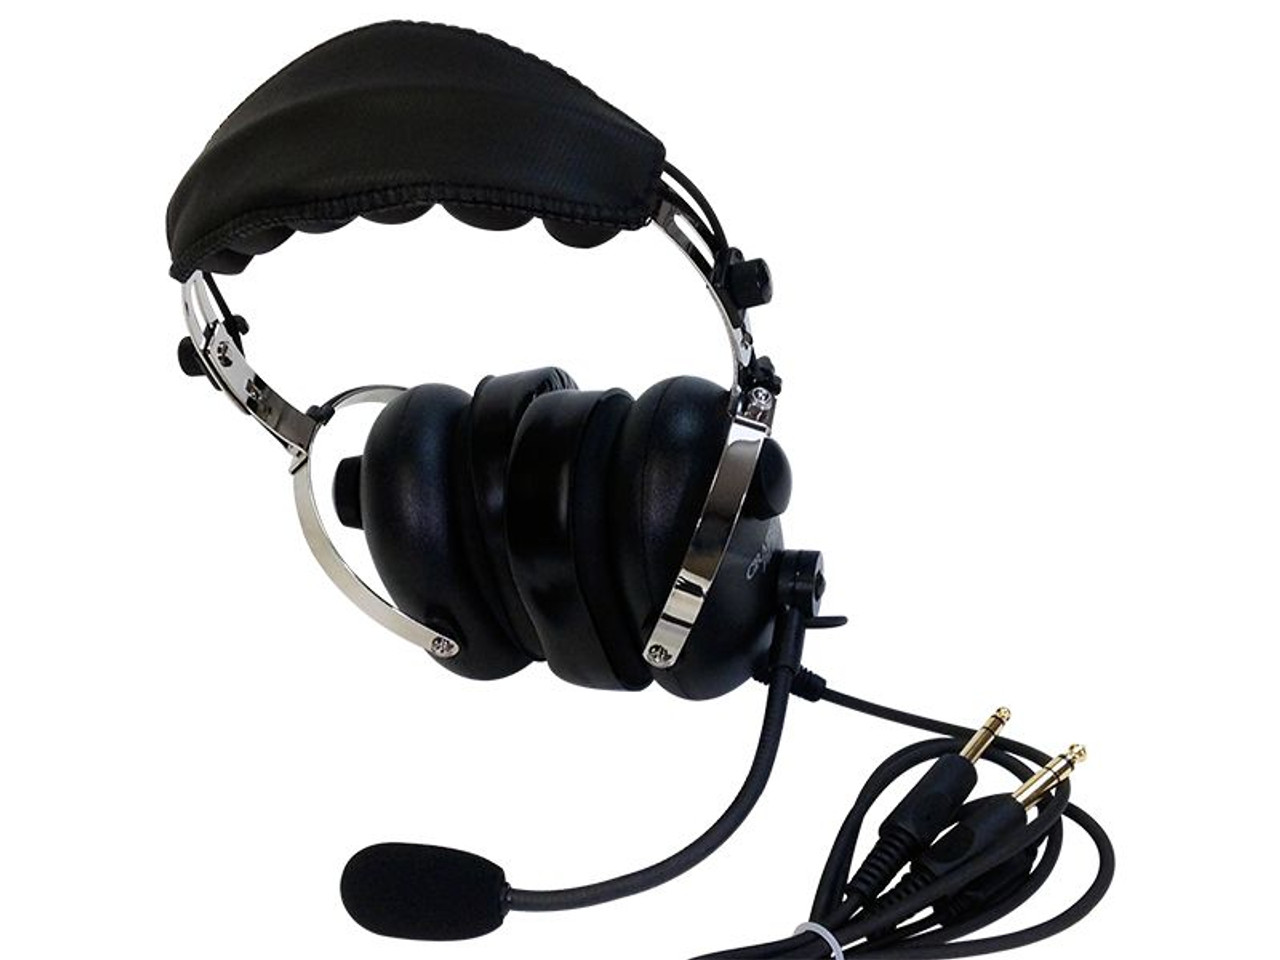 CRAZEDpilot HELICOPTER ANR ACTIVE noise reduction headset CP-1ANR-HELI